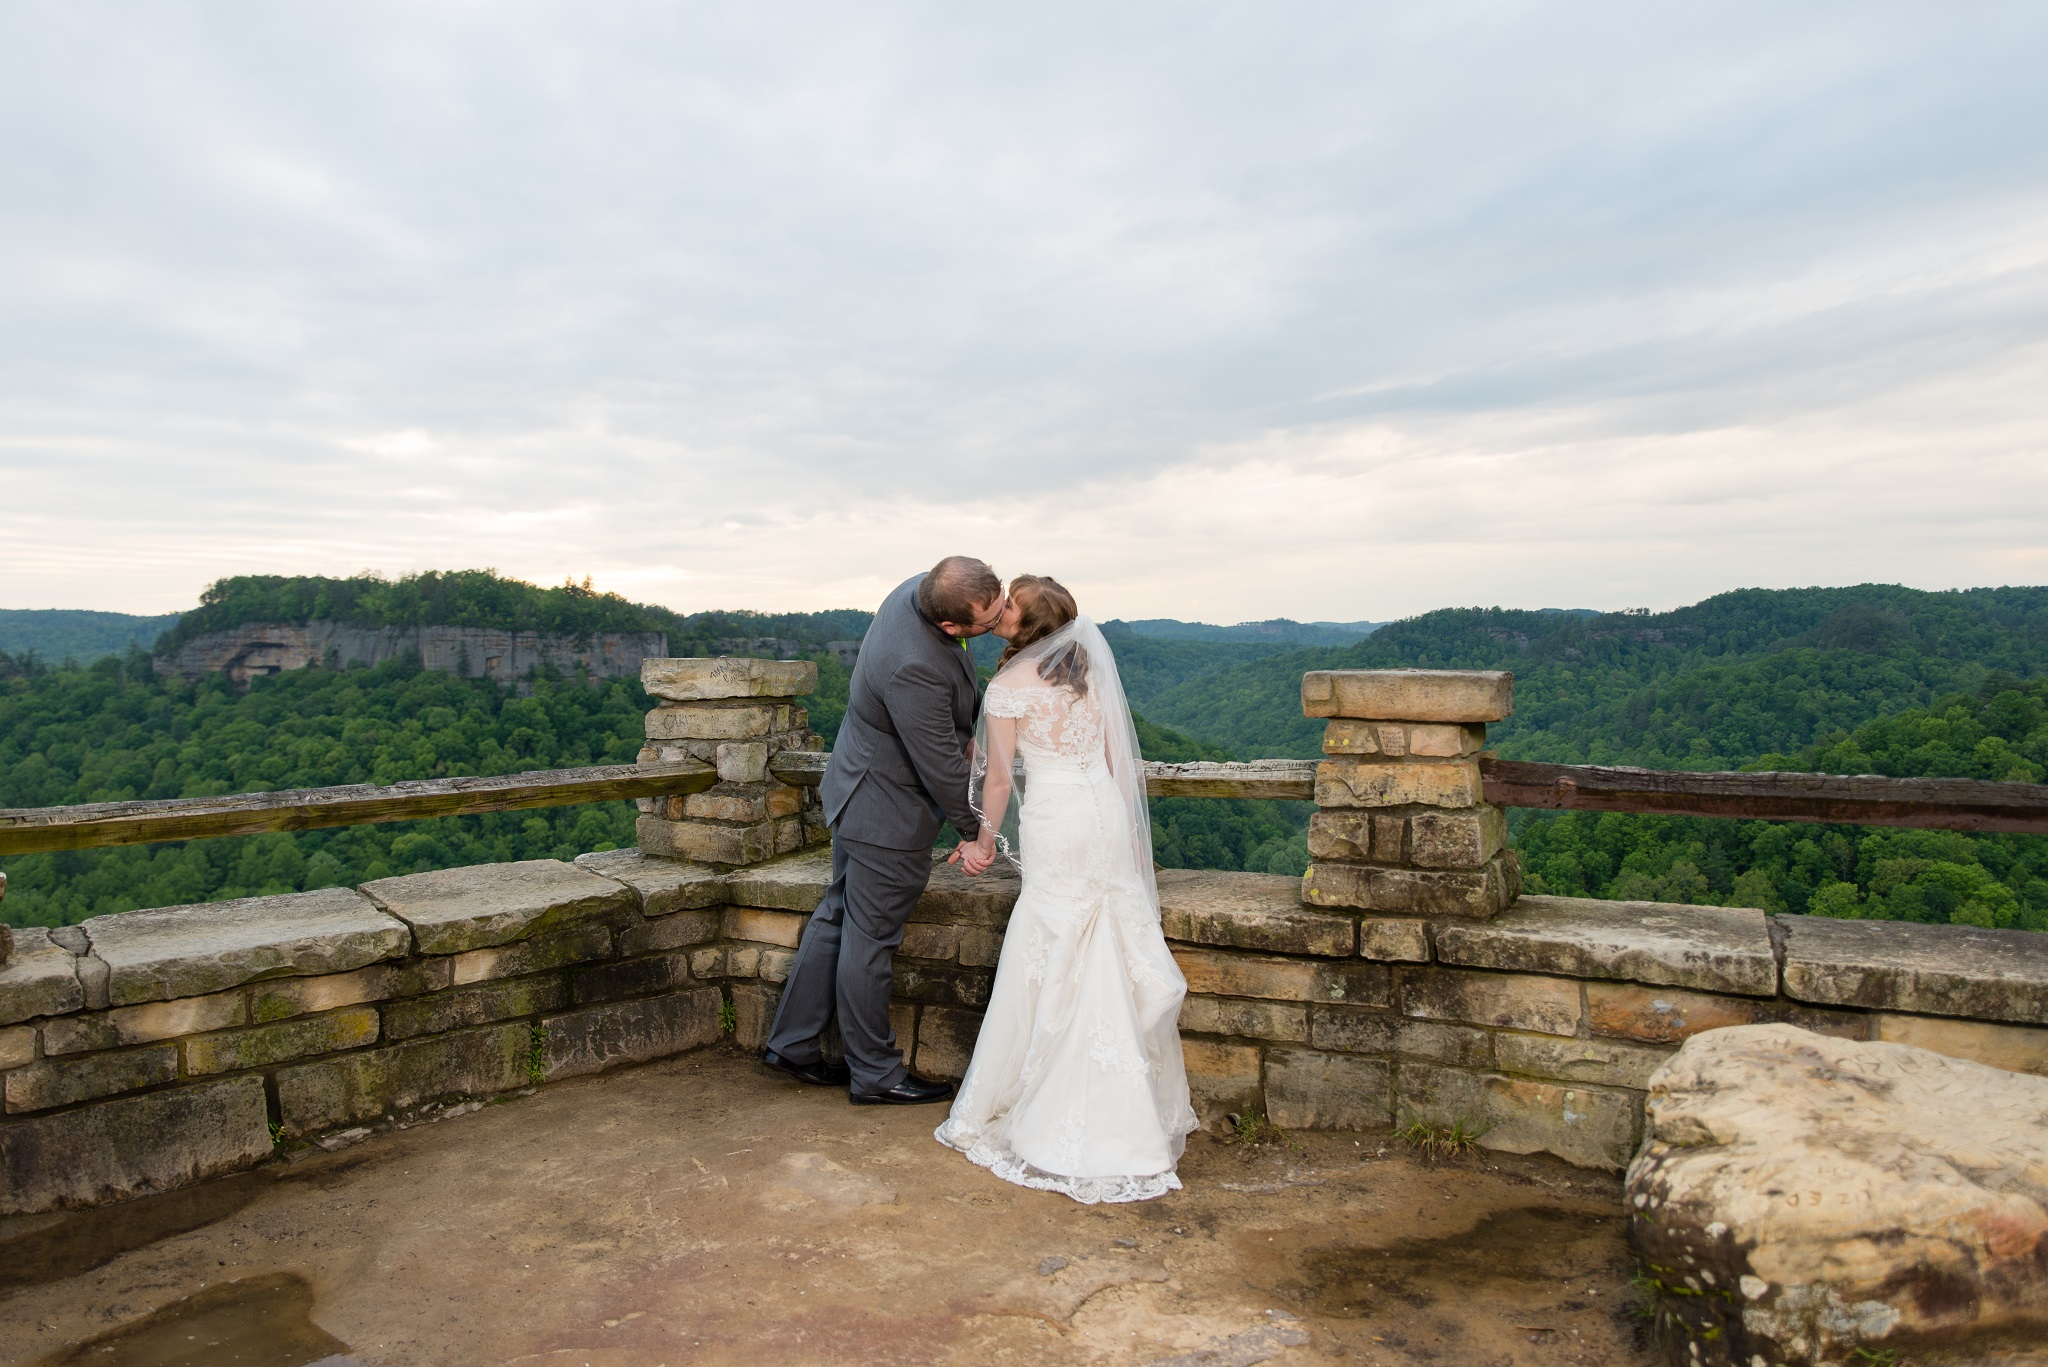 Red River Gorge, Kentucky, Chimney Rock, Red River Gorge photography, Red River Gorge wedding, Red River Gorge wedding photographers